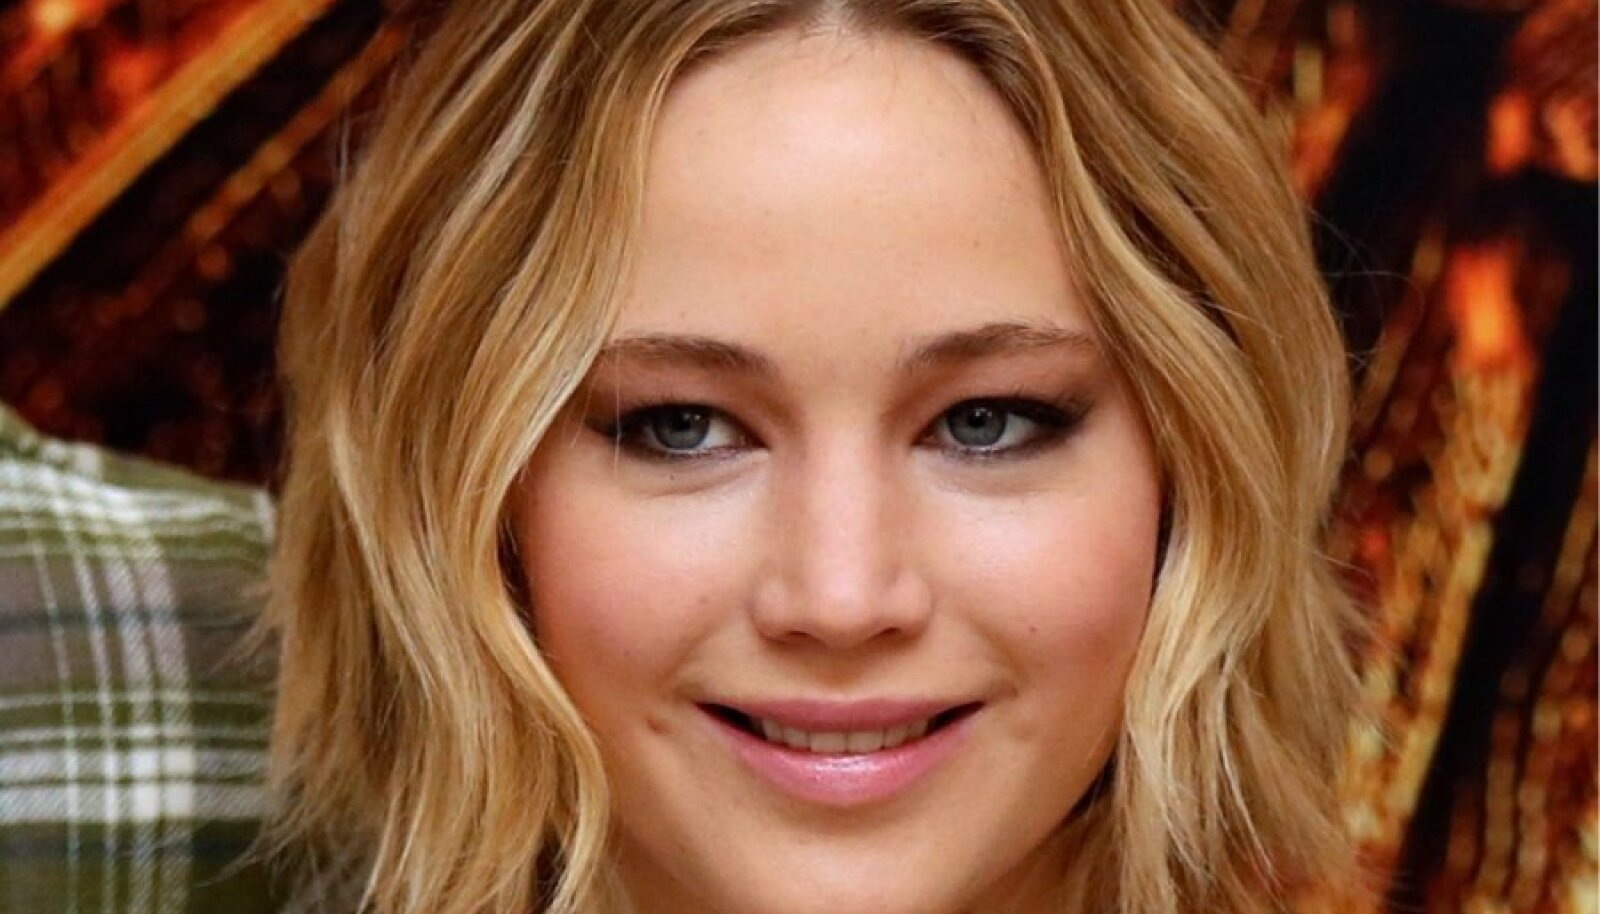 Actress Jennifer Lawrence attends the photocall for 'The Hunger Games: Mockingjay Part 1' in London